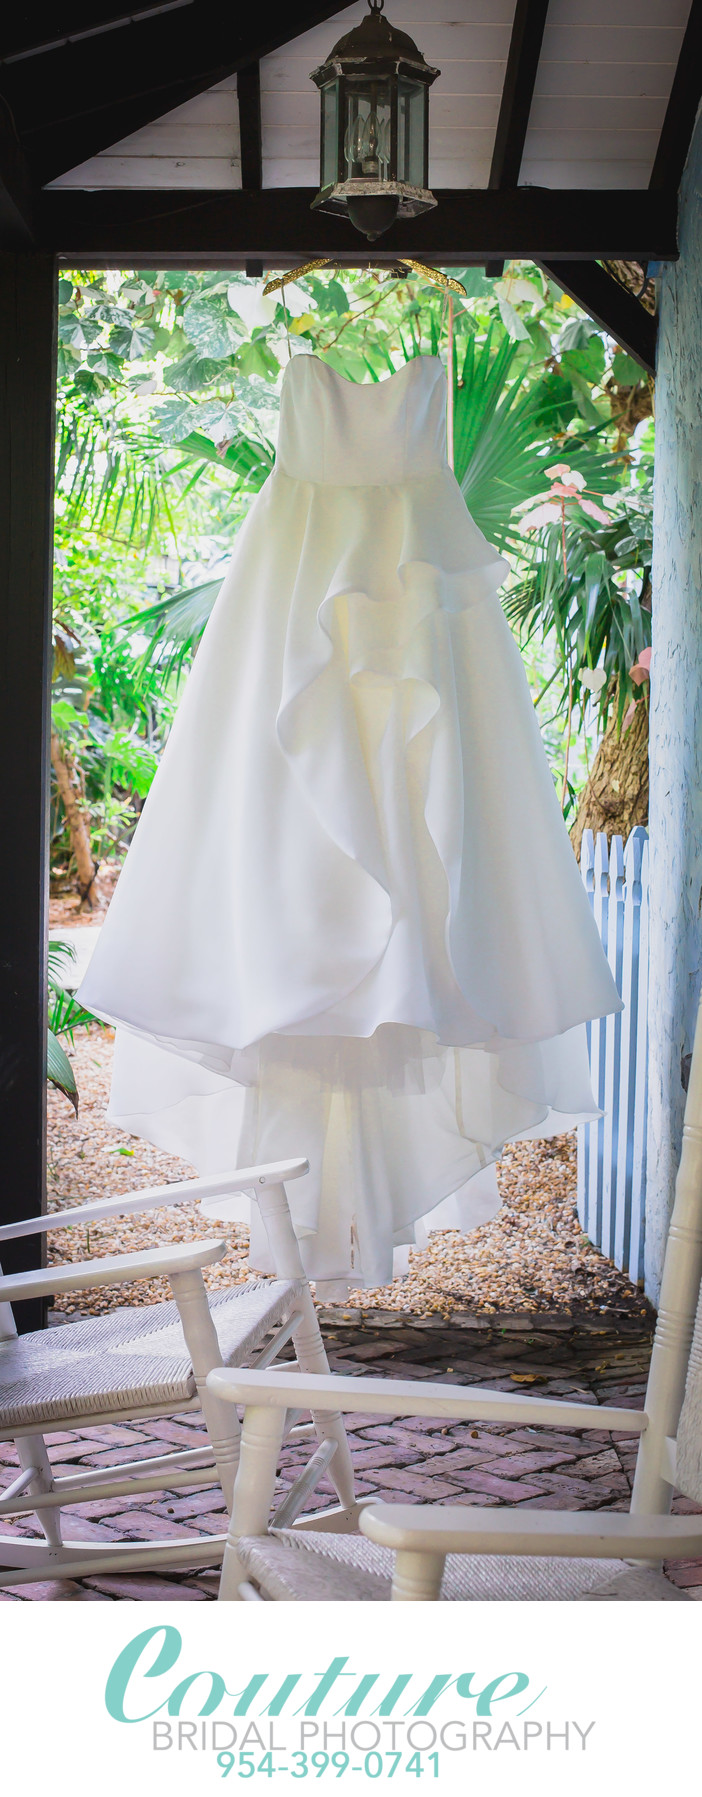 PICTURES OF THE WEDDING DRESS PHOTOGRAPHER CANT FORGET